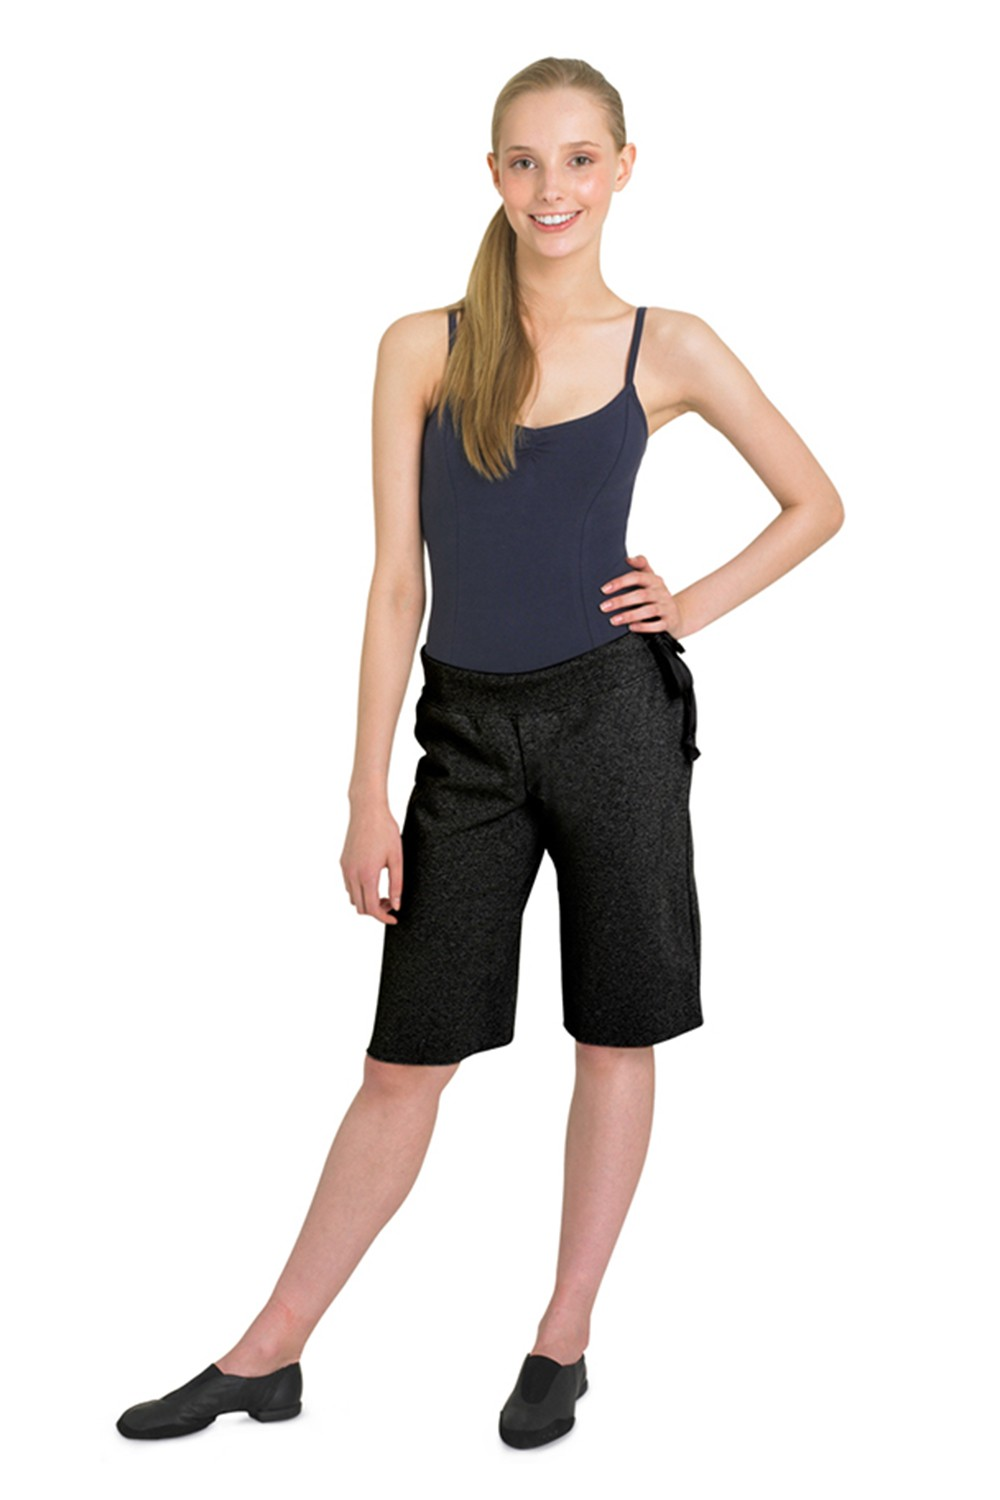 Loose Short W/ Drawstring Band Women's Dance Shorts